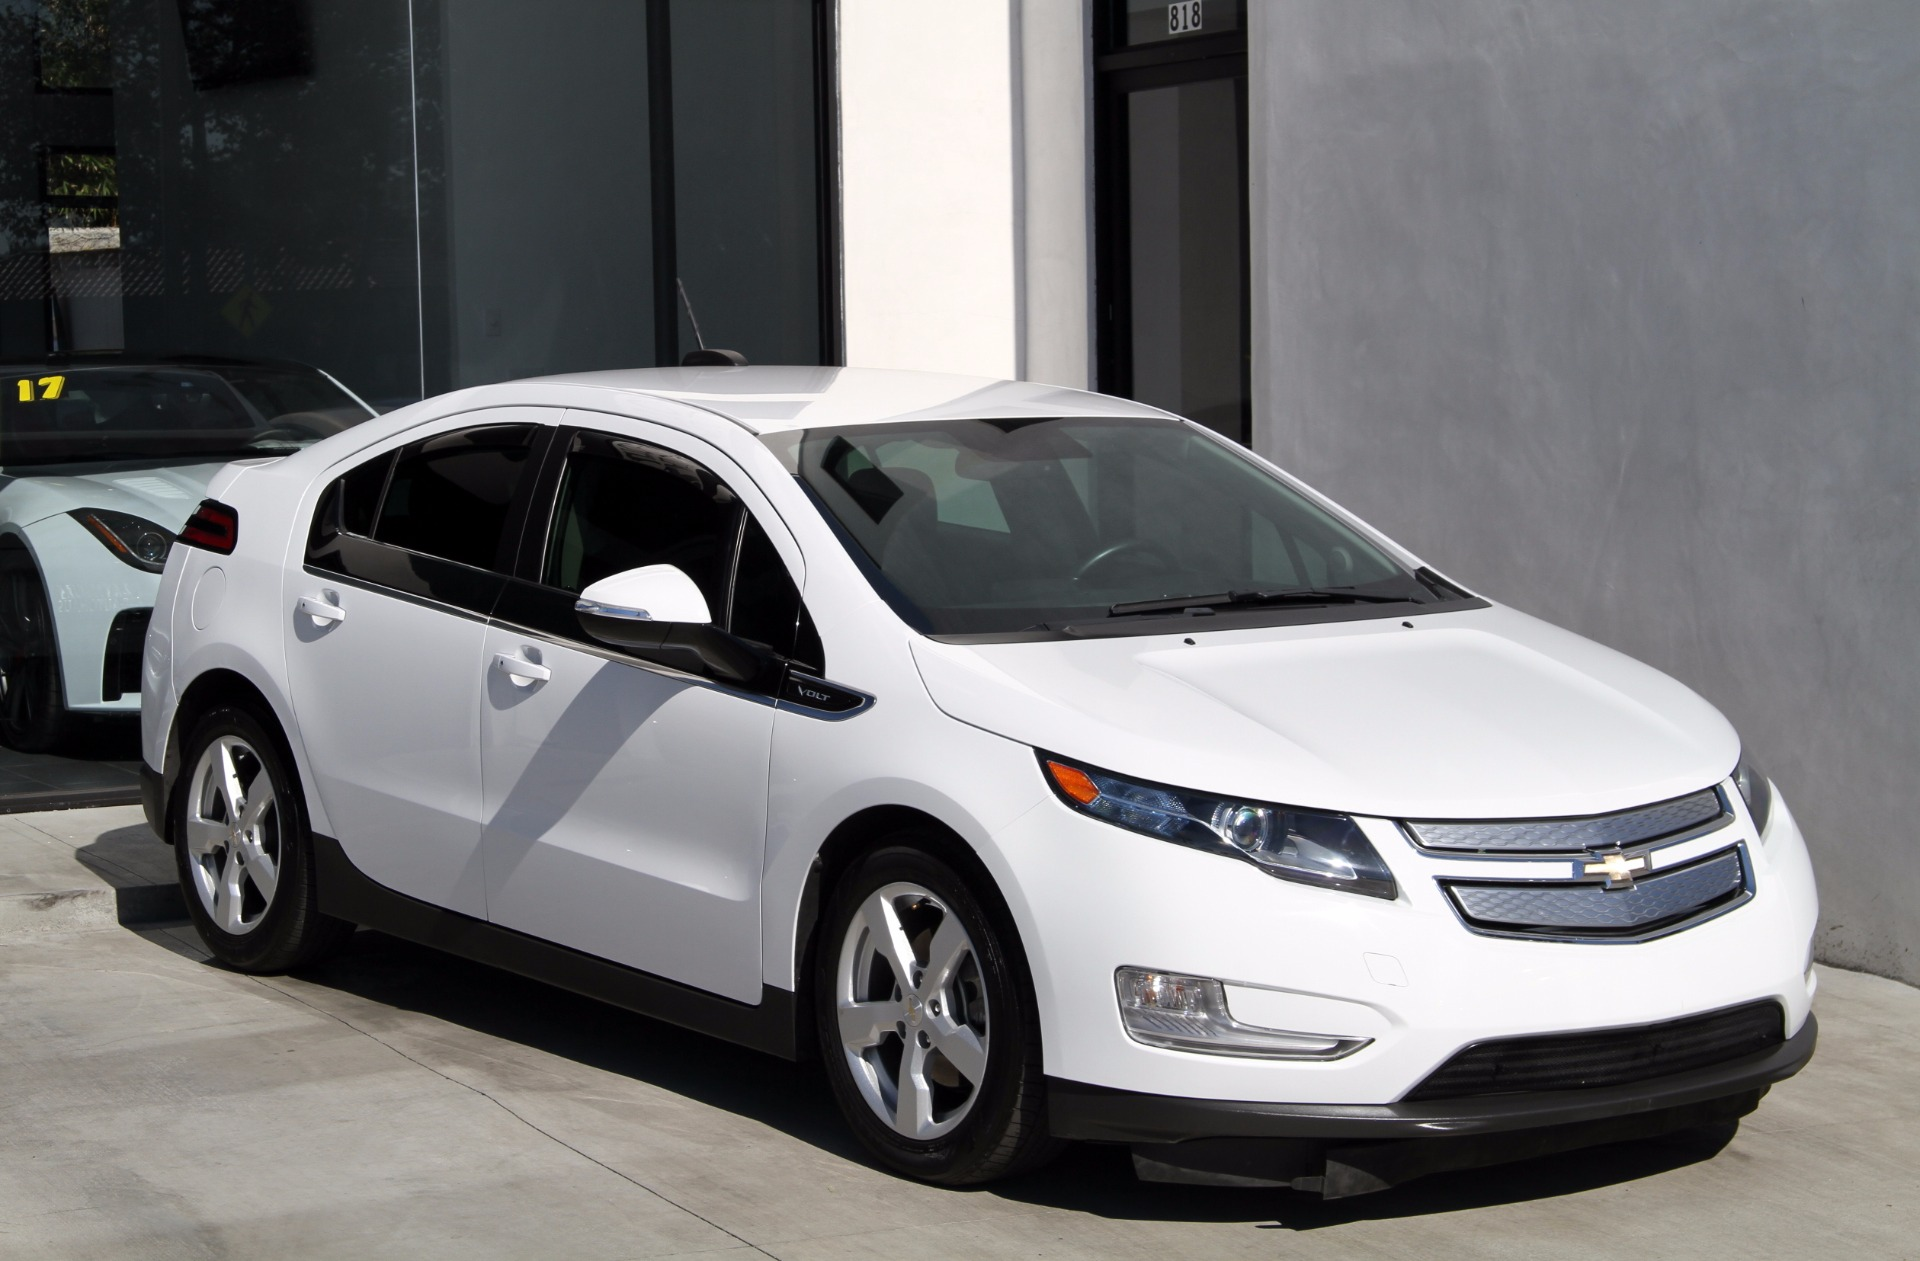 2015 chevrolet volt premium stock 5901a for sale near for General motors dealers near me